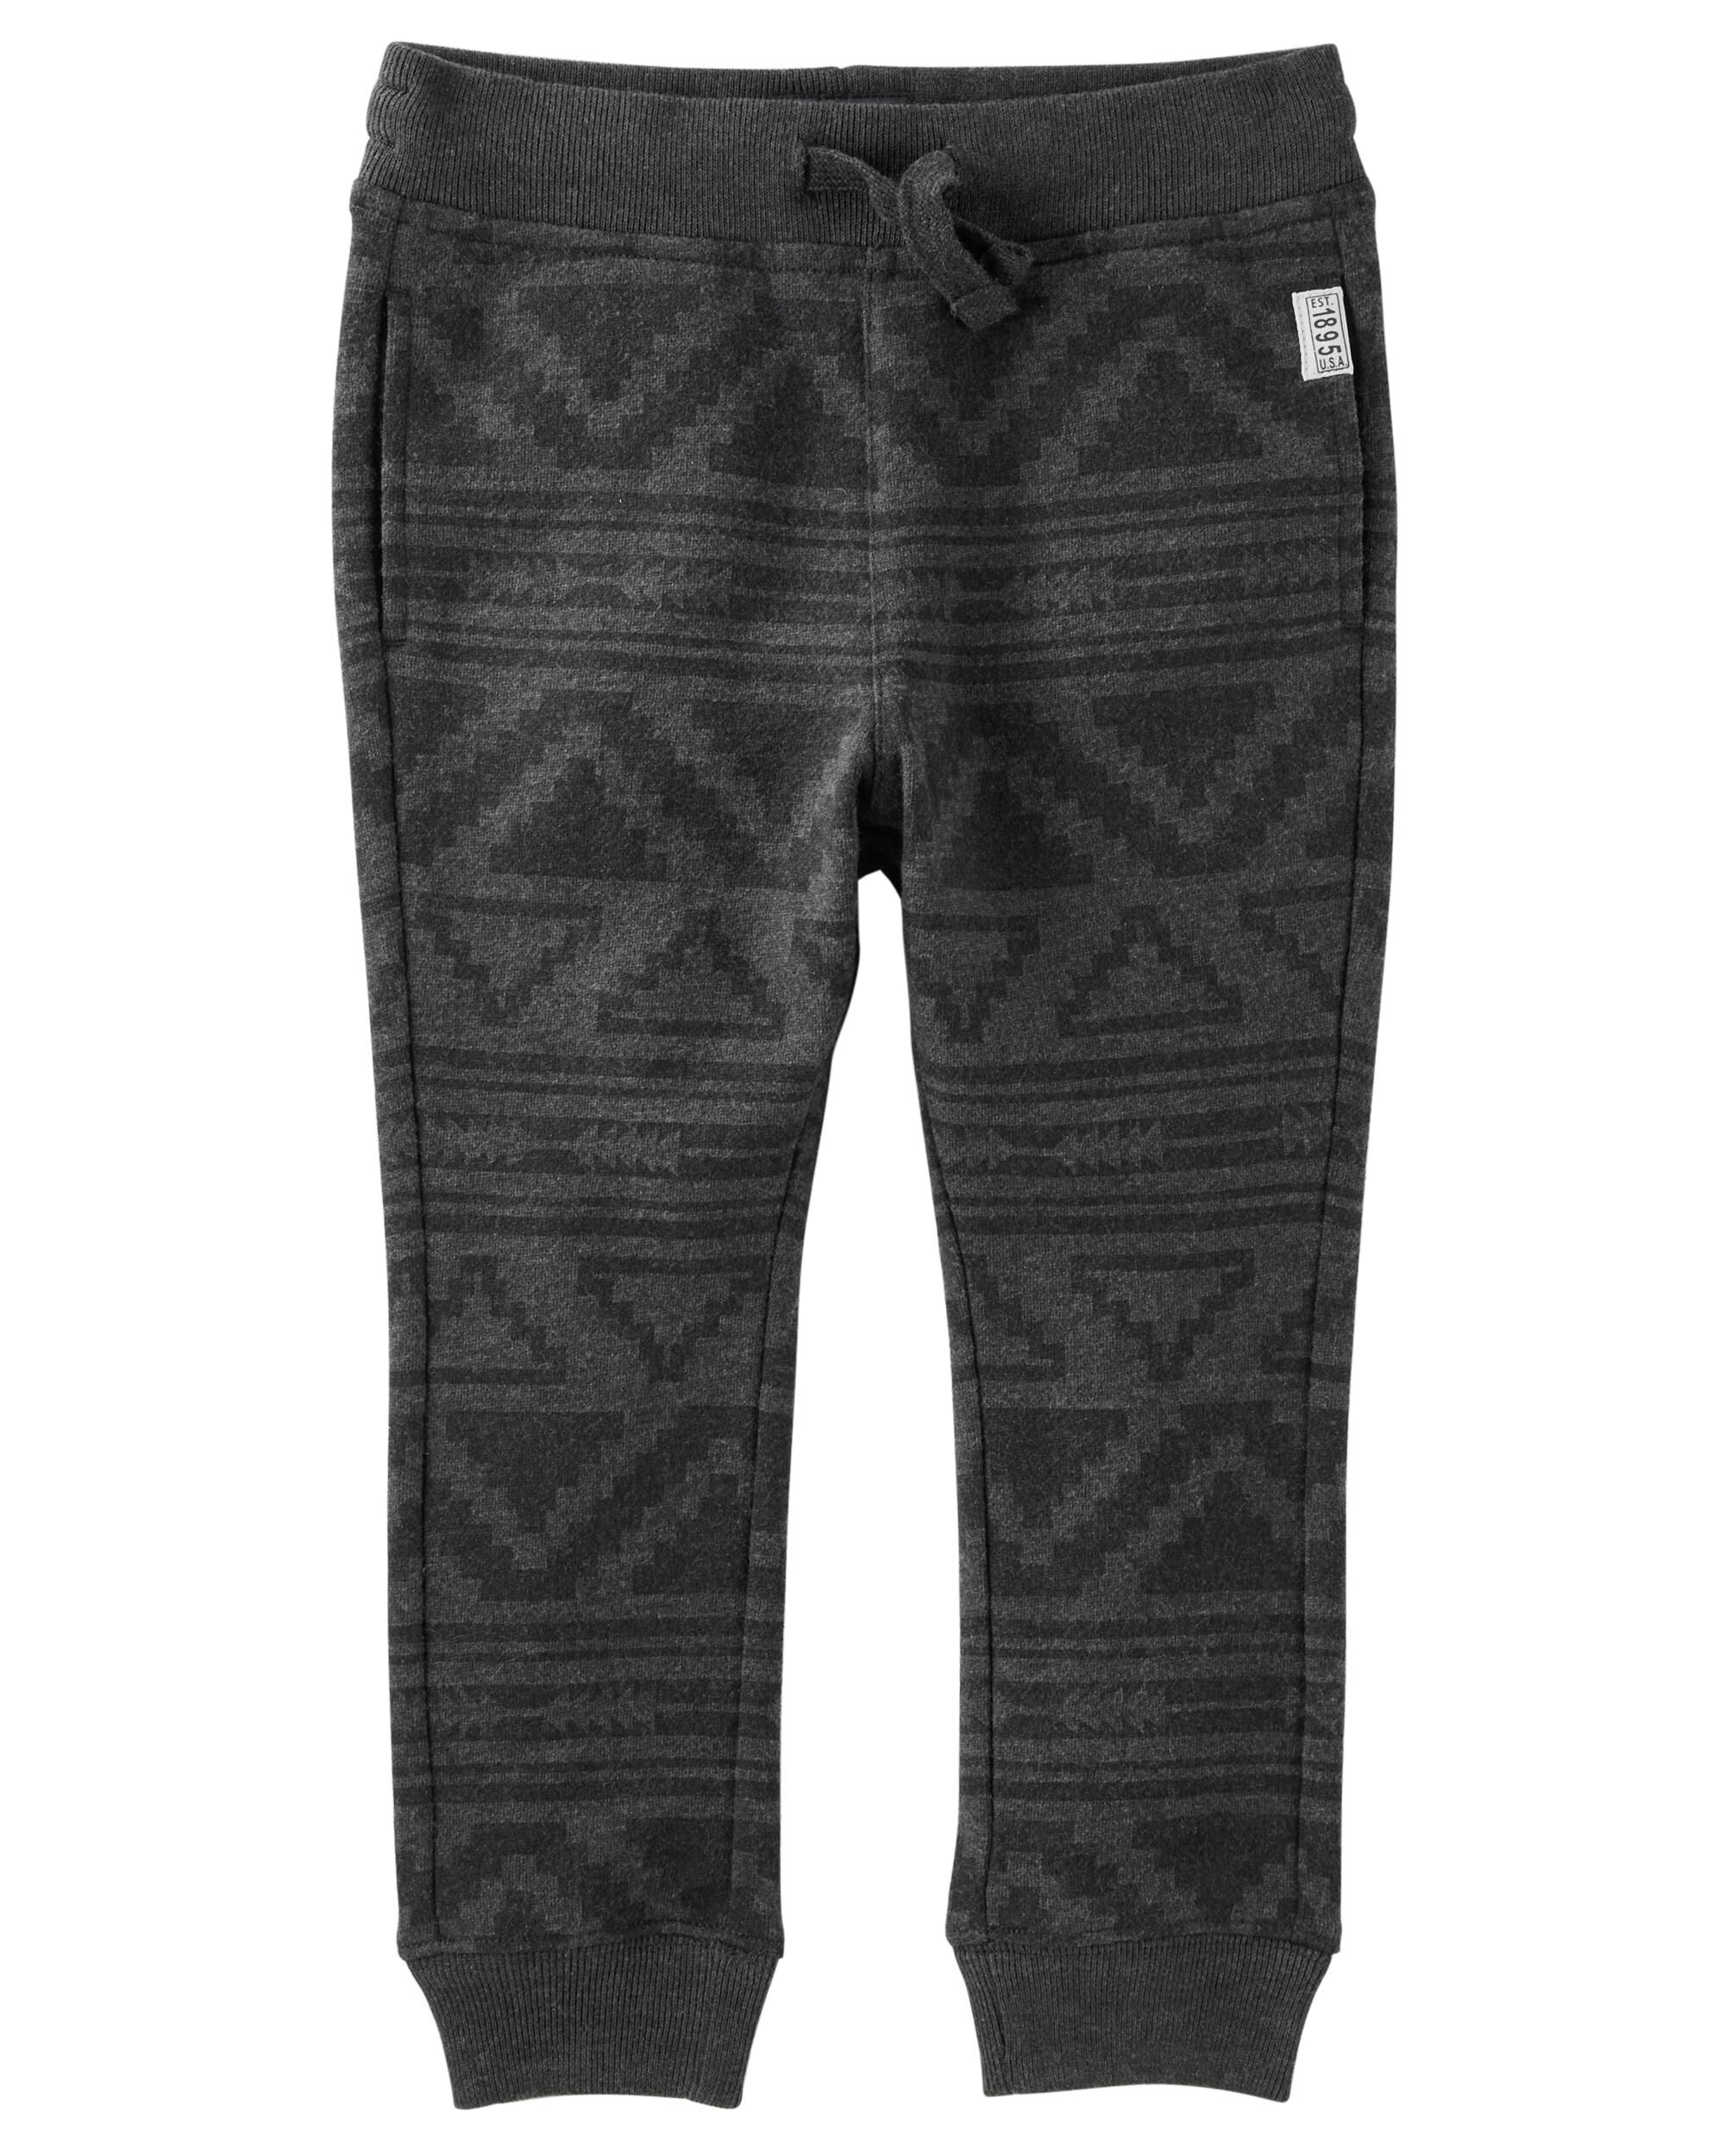 Geo Print Fleece Joggers Pants Black Loading Zoom